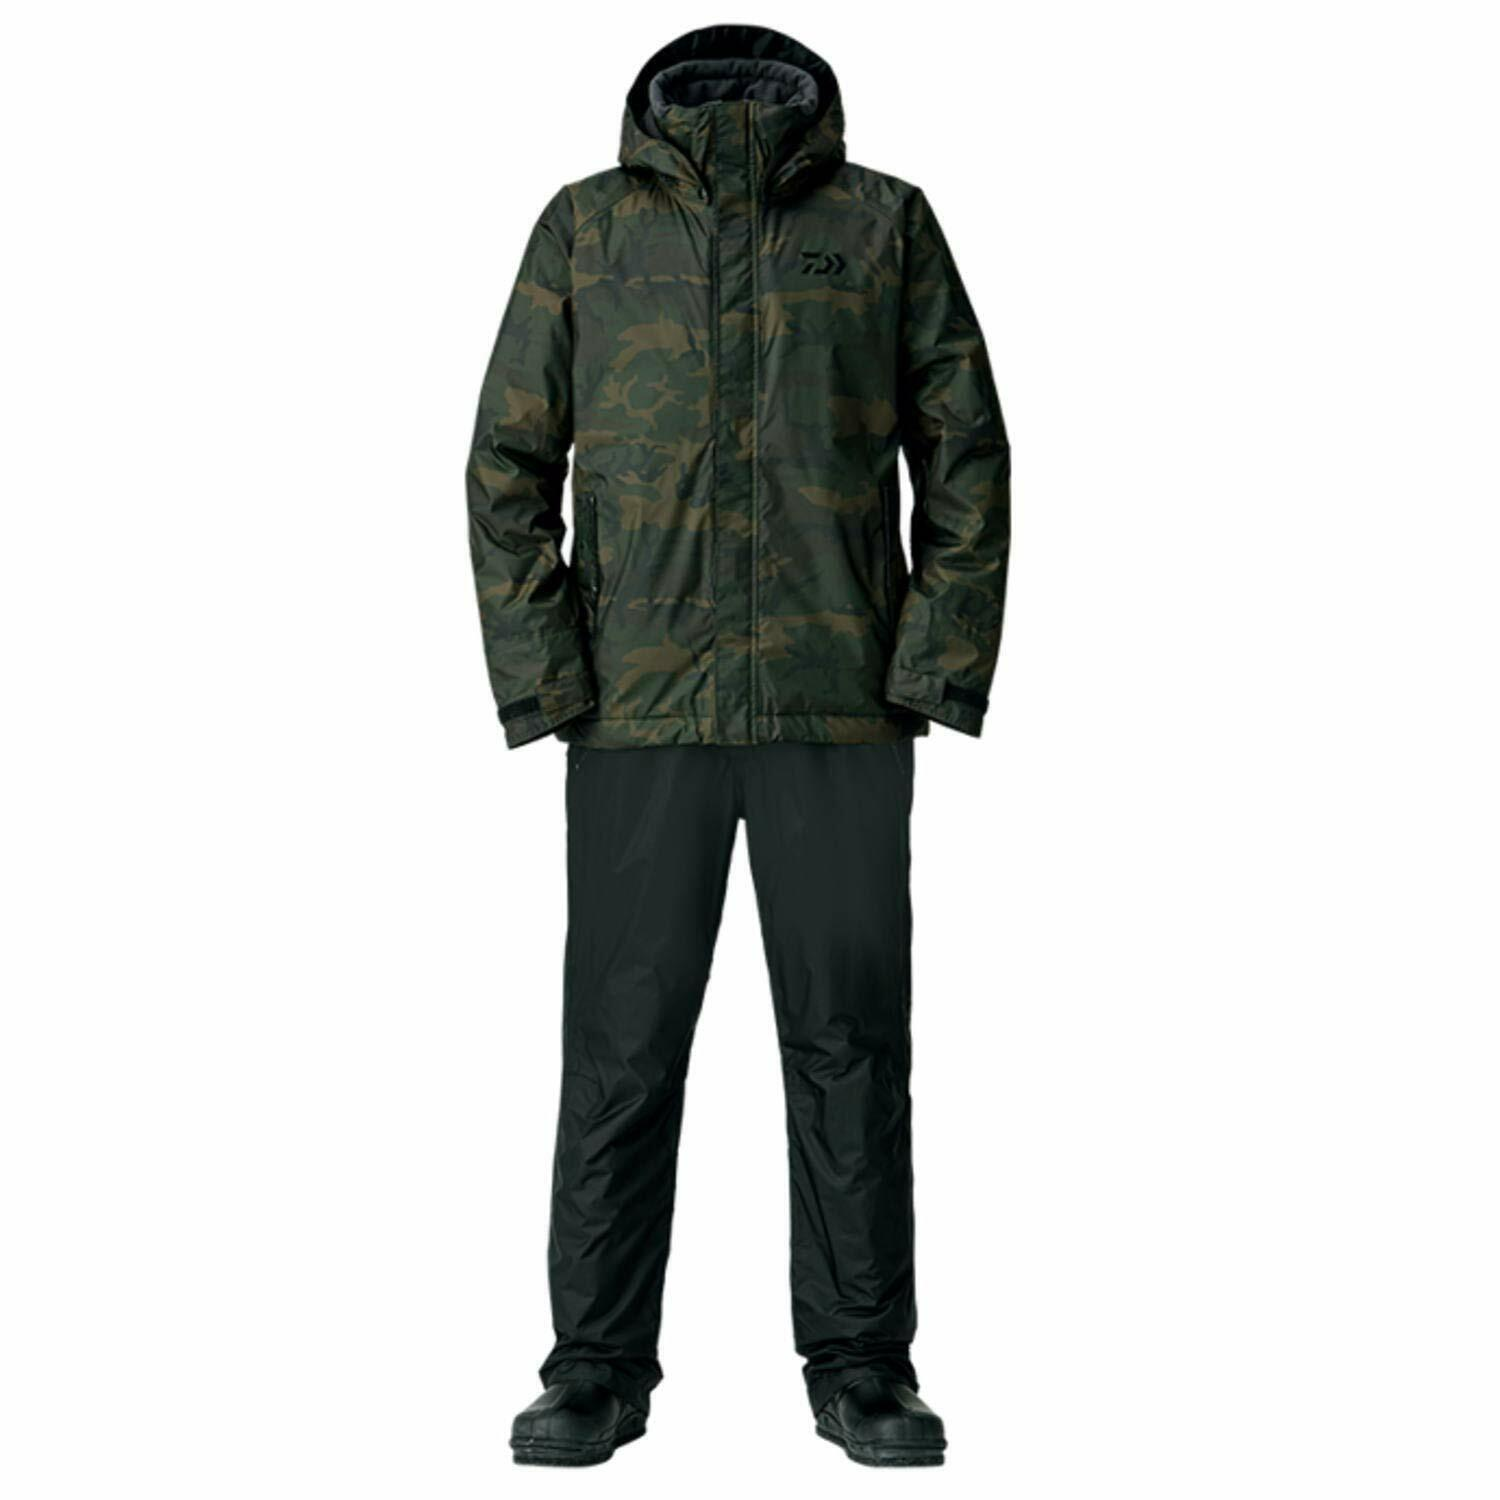 Daiwa Rainmax Winter Suit Pants DW-35008 Camouflage 2XL 182-188 New From Japan